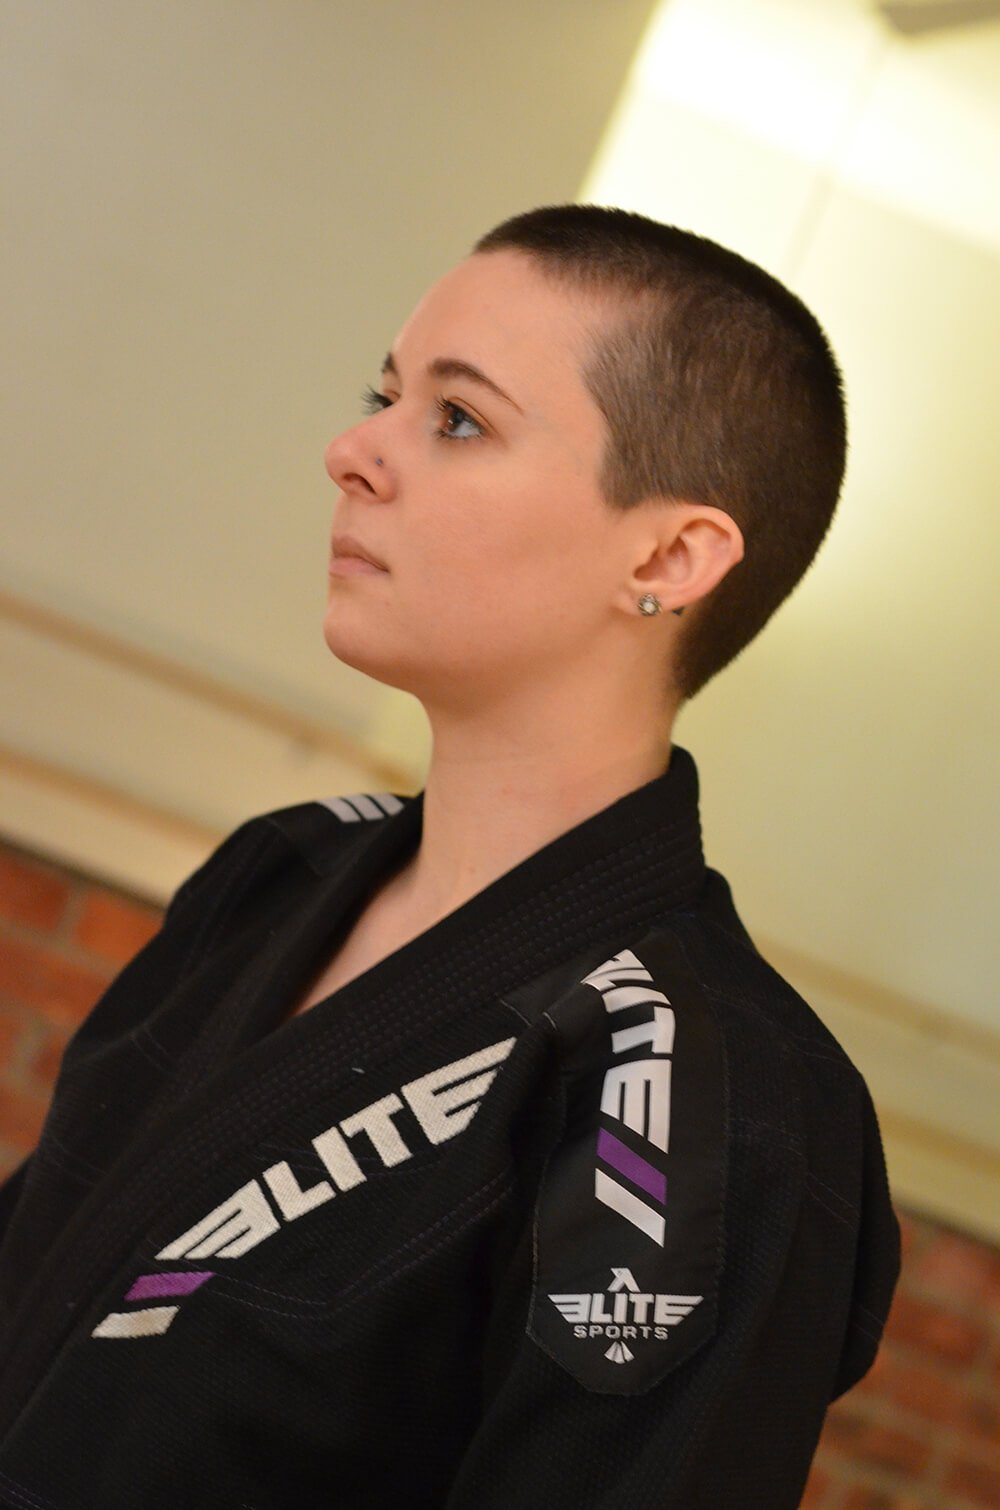 Elite Sports Team Elite Bjj Fighter Emily Dittmar  Image21